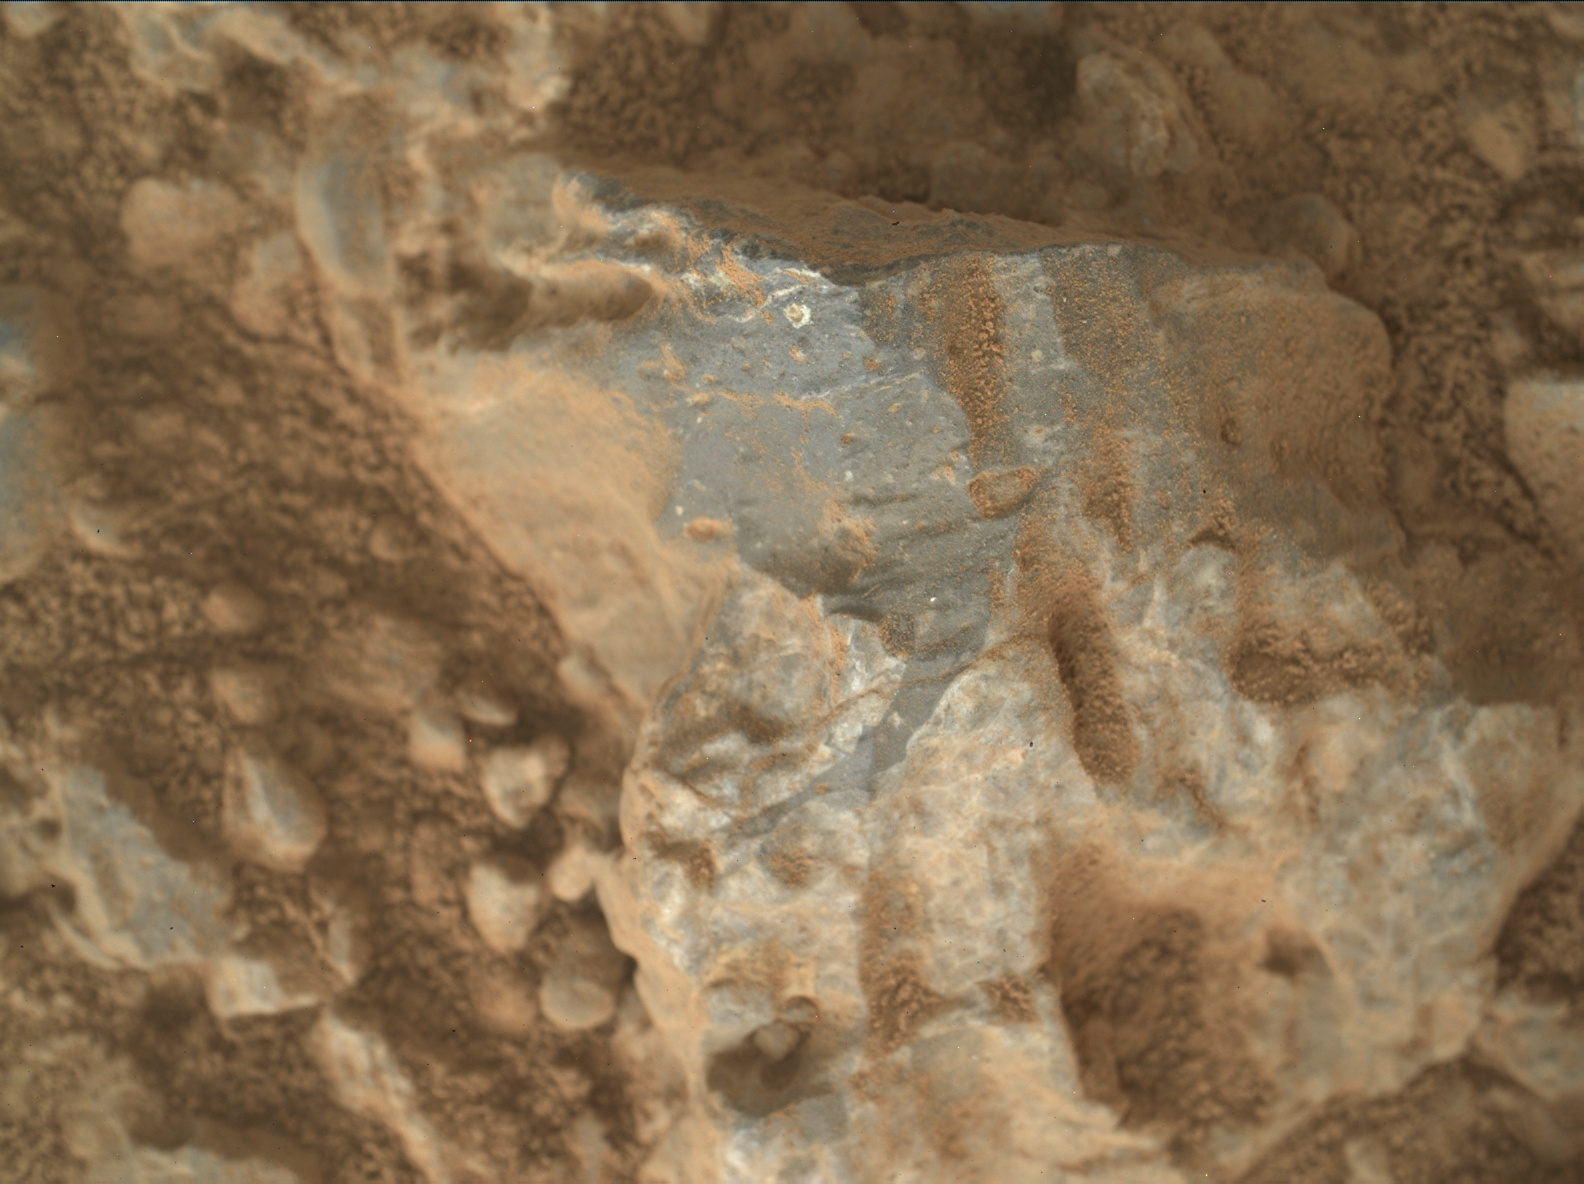 Nasa's Mars rover Curiosity acquired this image using its Mars Hand Lens Imager (MAHLI) on Sol 387